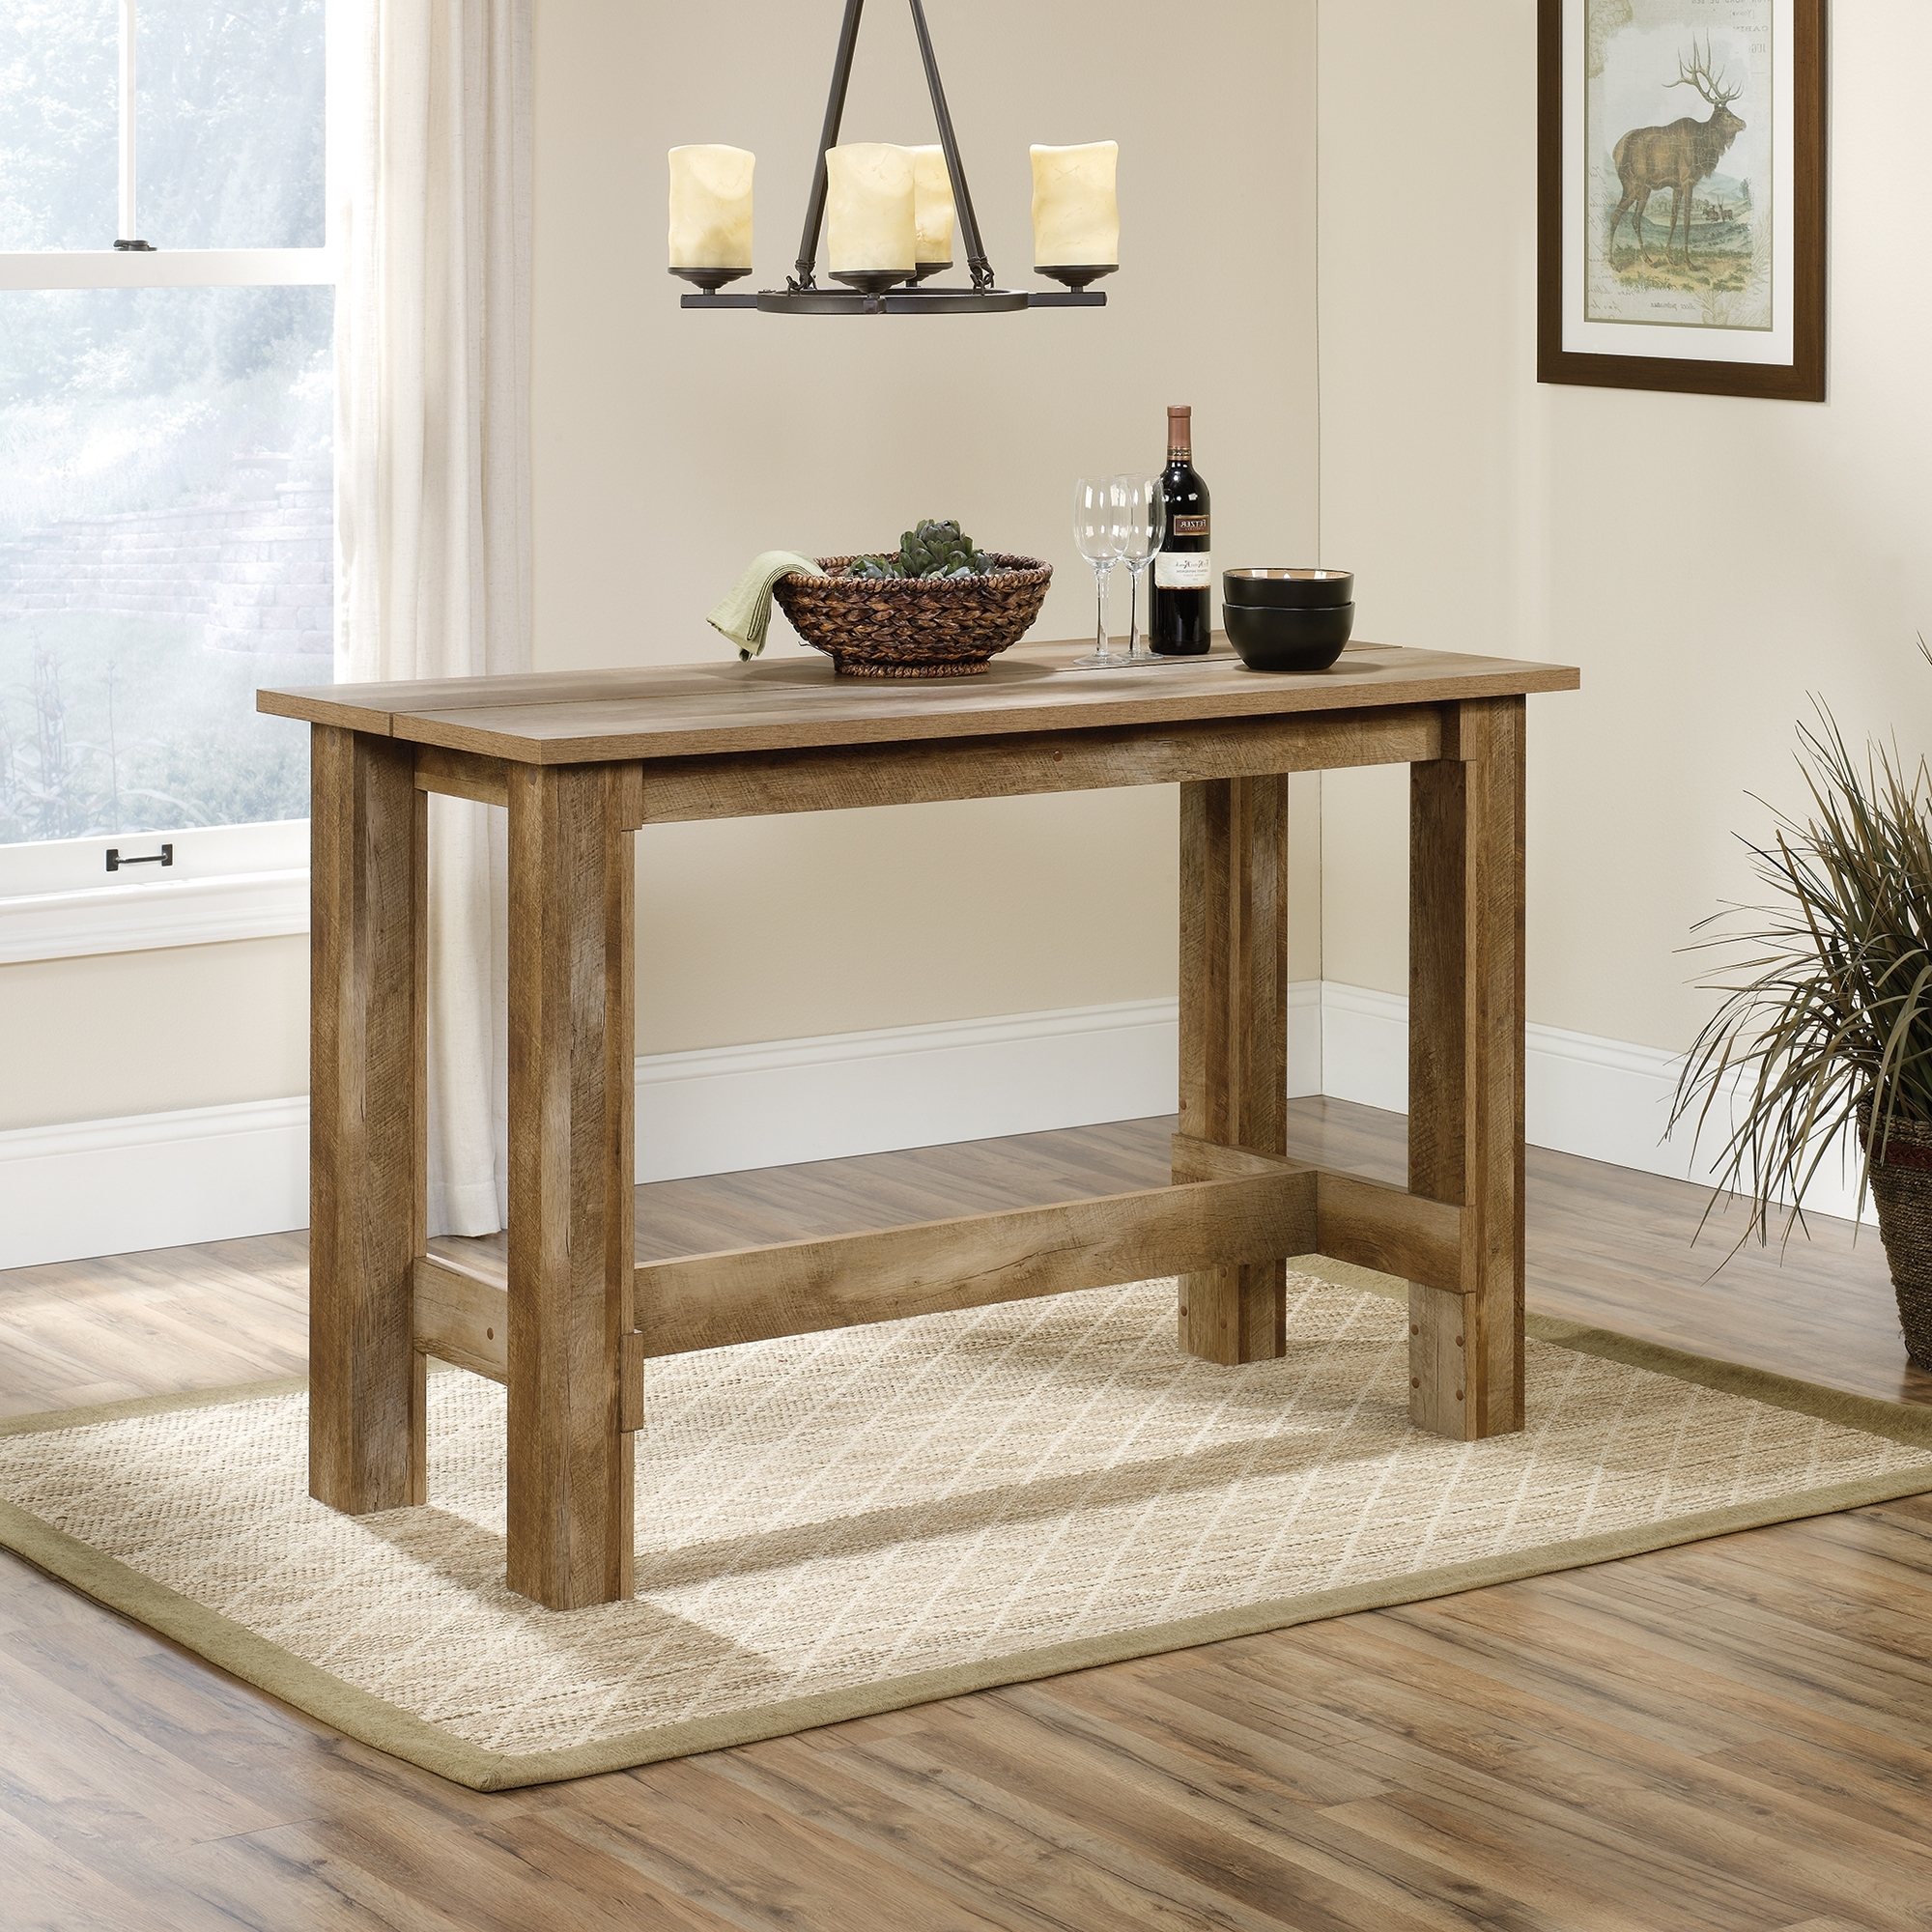 Fashionable Boone Mountain Counter  Height Dinette Table (416698) – Sauder For Craftsman Rectangle Extension Dining Tables (View 16 of 25)